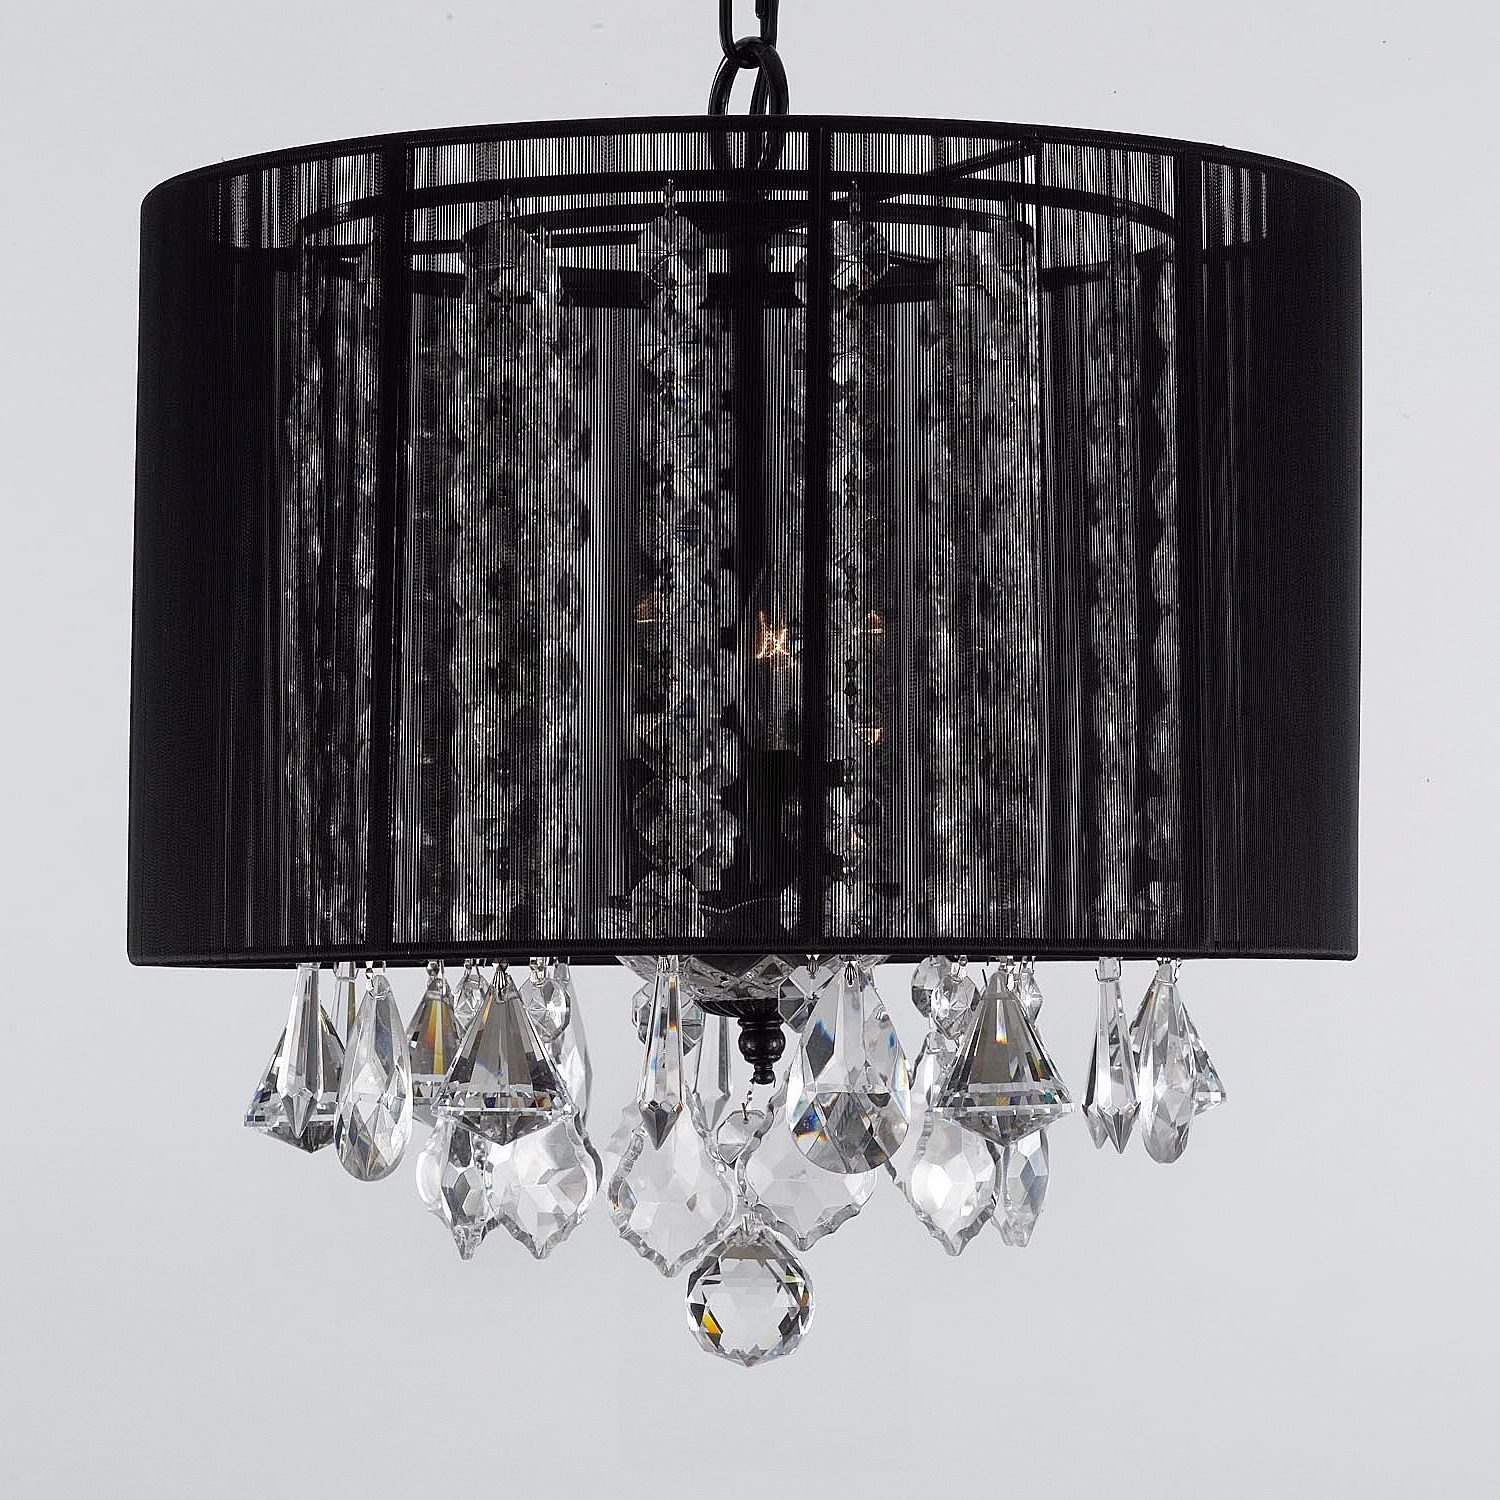 Most Popular Crystal Chandeliers With Shades In G7 Black/604/3 Gallery Chandeliers With Shades Crystal Chandelier (View 16 of 20)